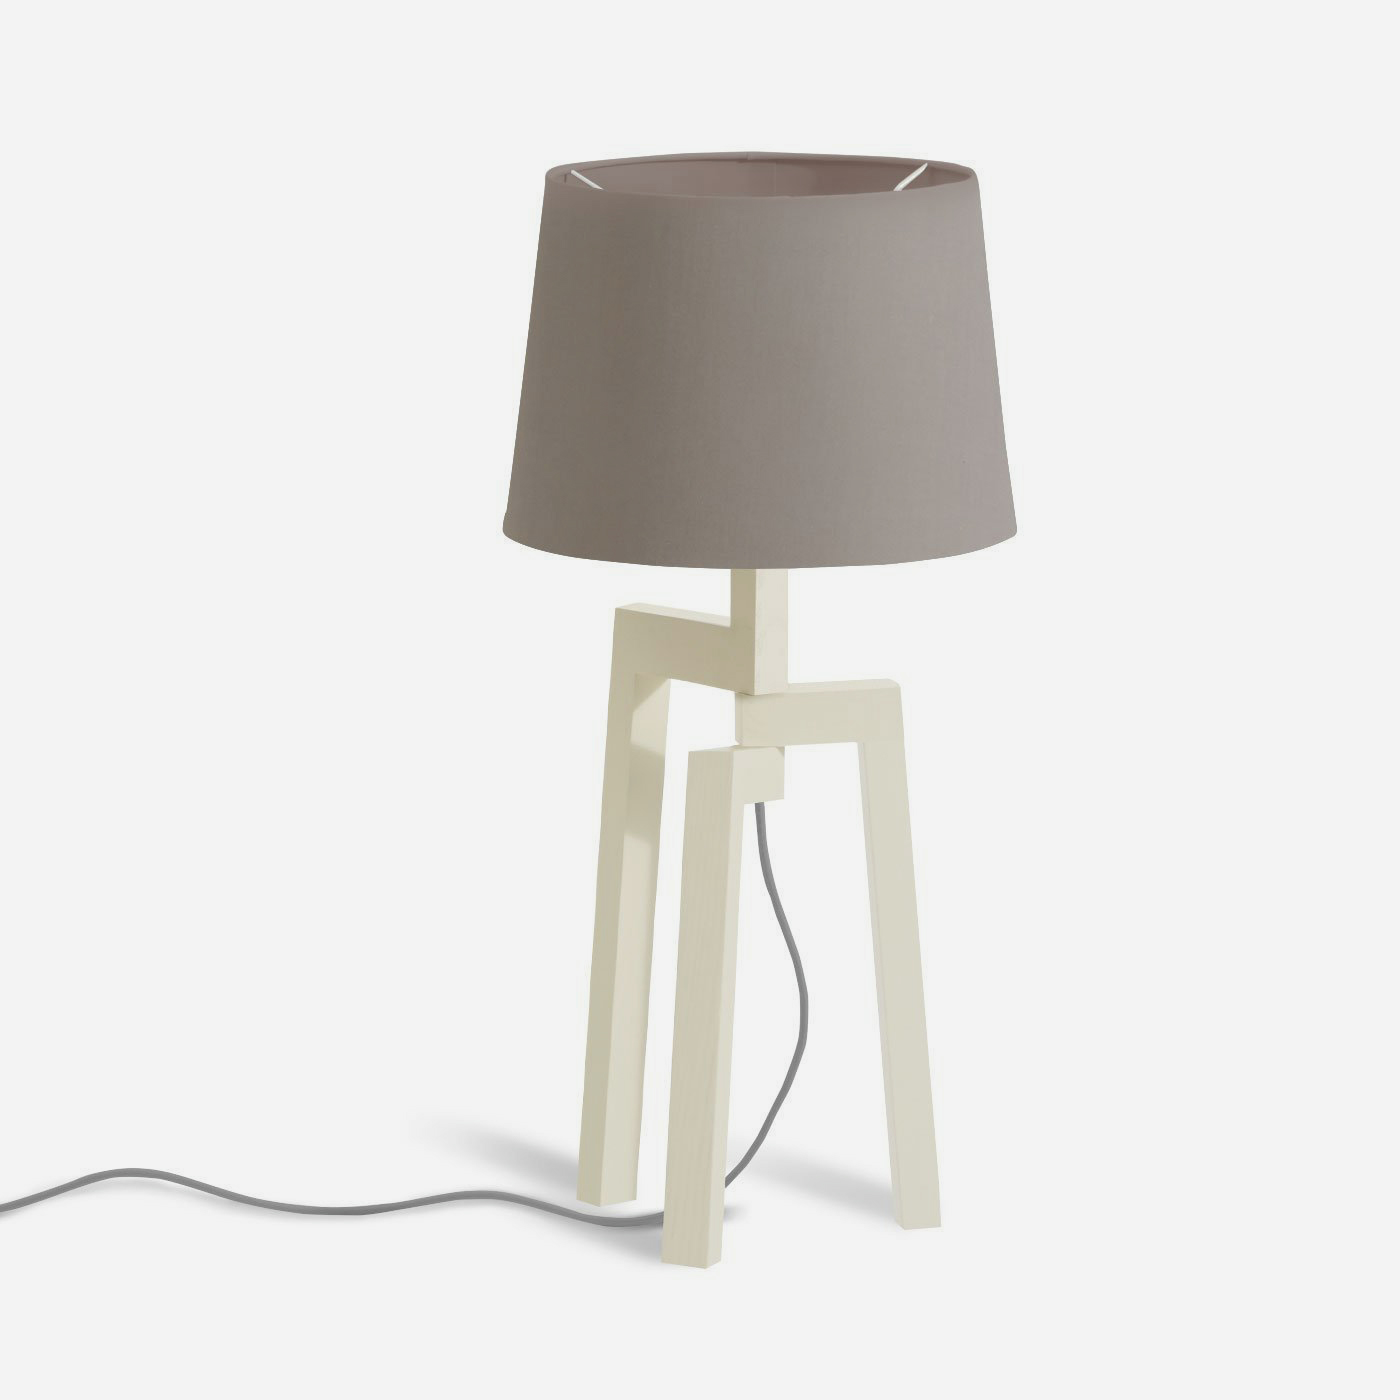 Blu dot stilt table lamp melody arredamenti for Melody arredamenti